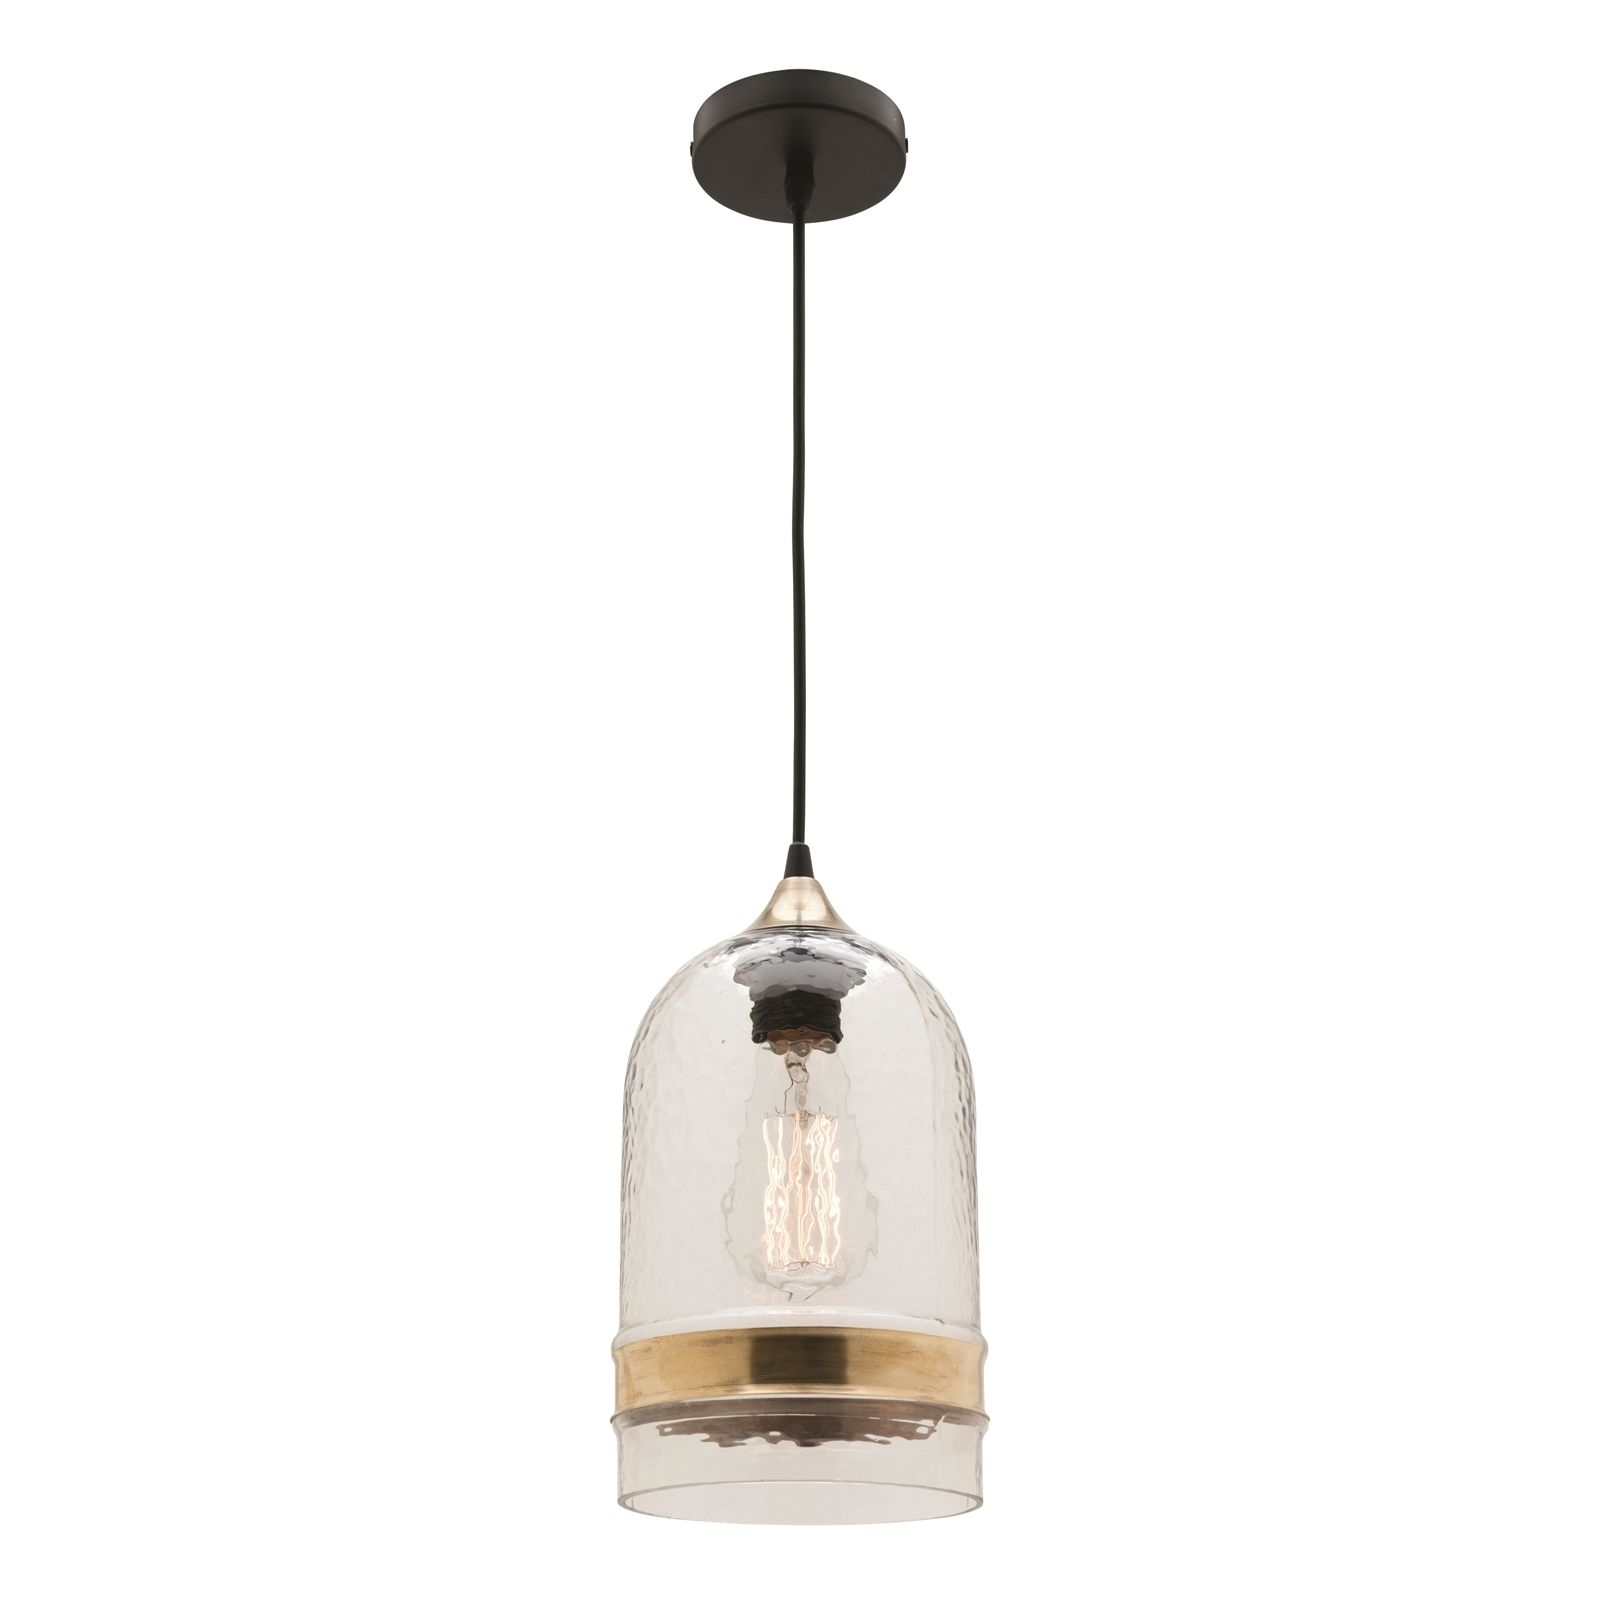 Find Mercator 240V Glass And Brass Haven Pendant Light At Bunnings Inside Outdoor Ceiling Lights At Bunnings (#7 of 15)